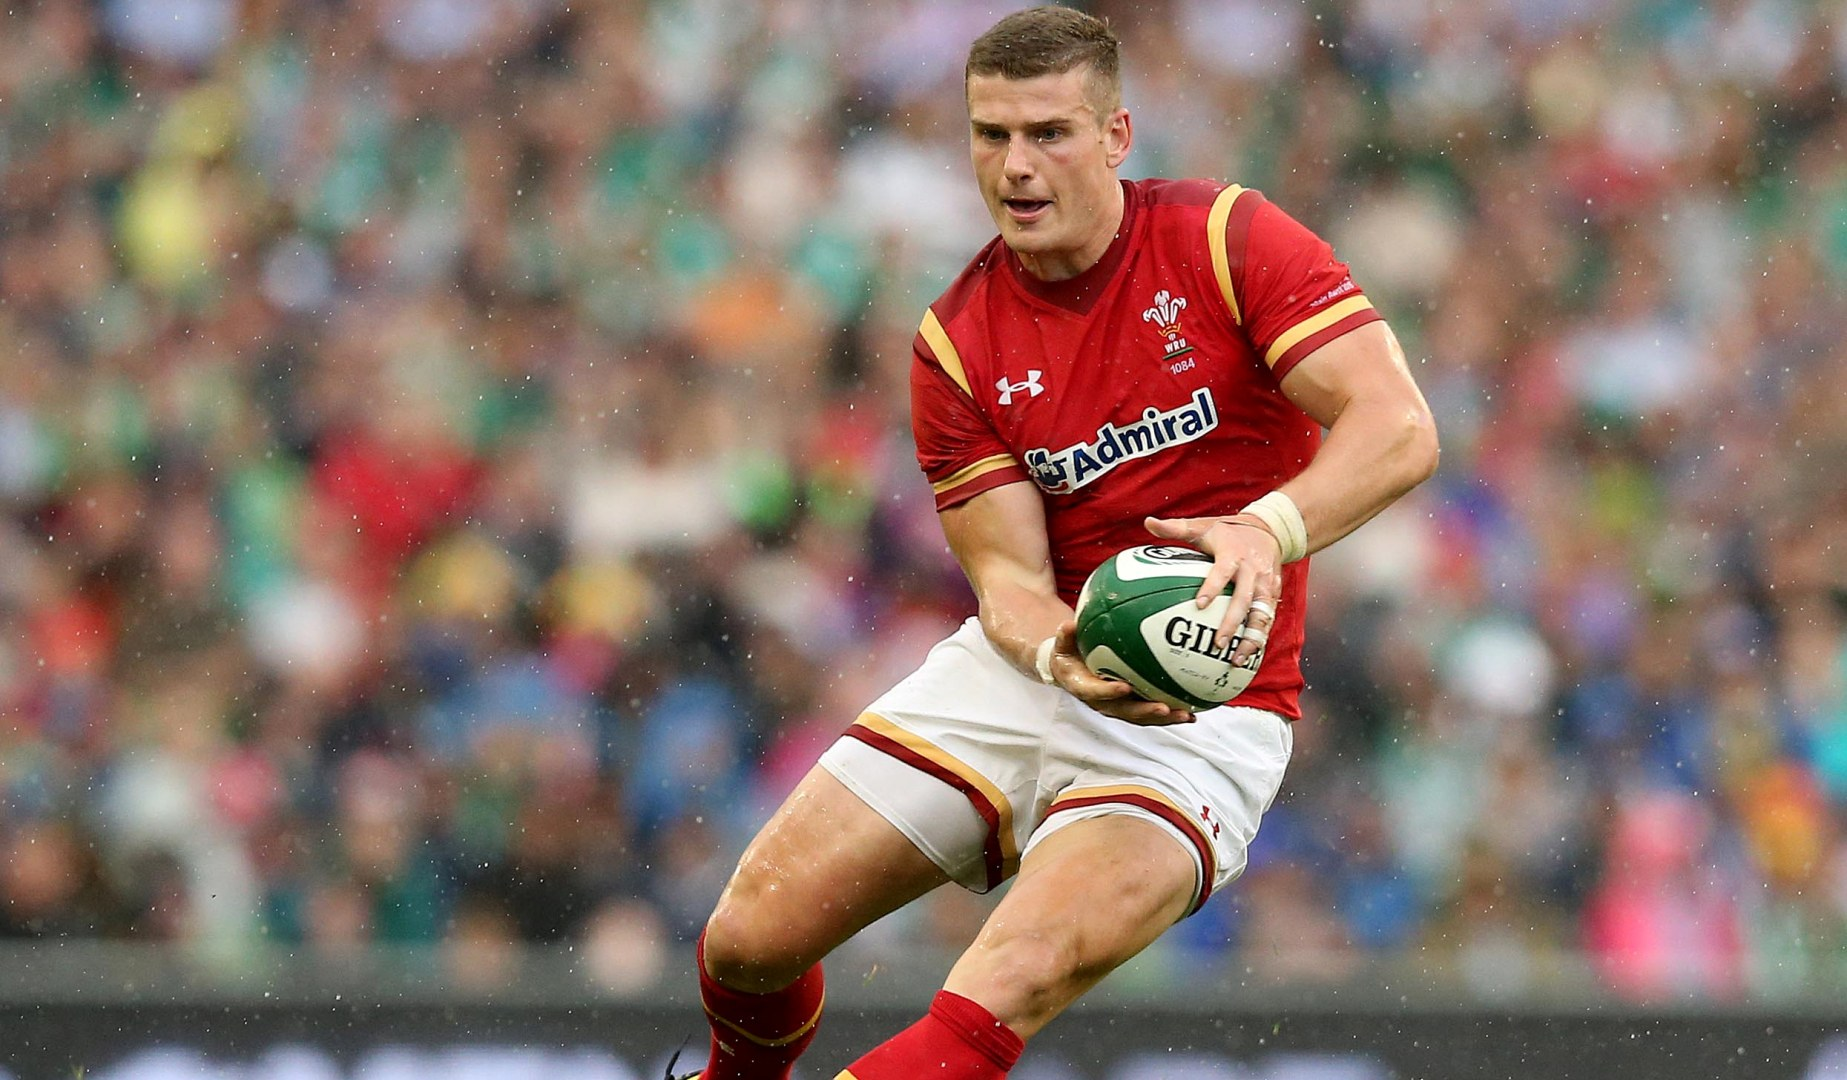 LionsWatch: Wales looking for third straight victory